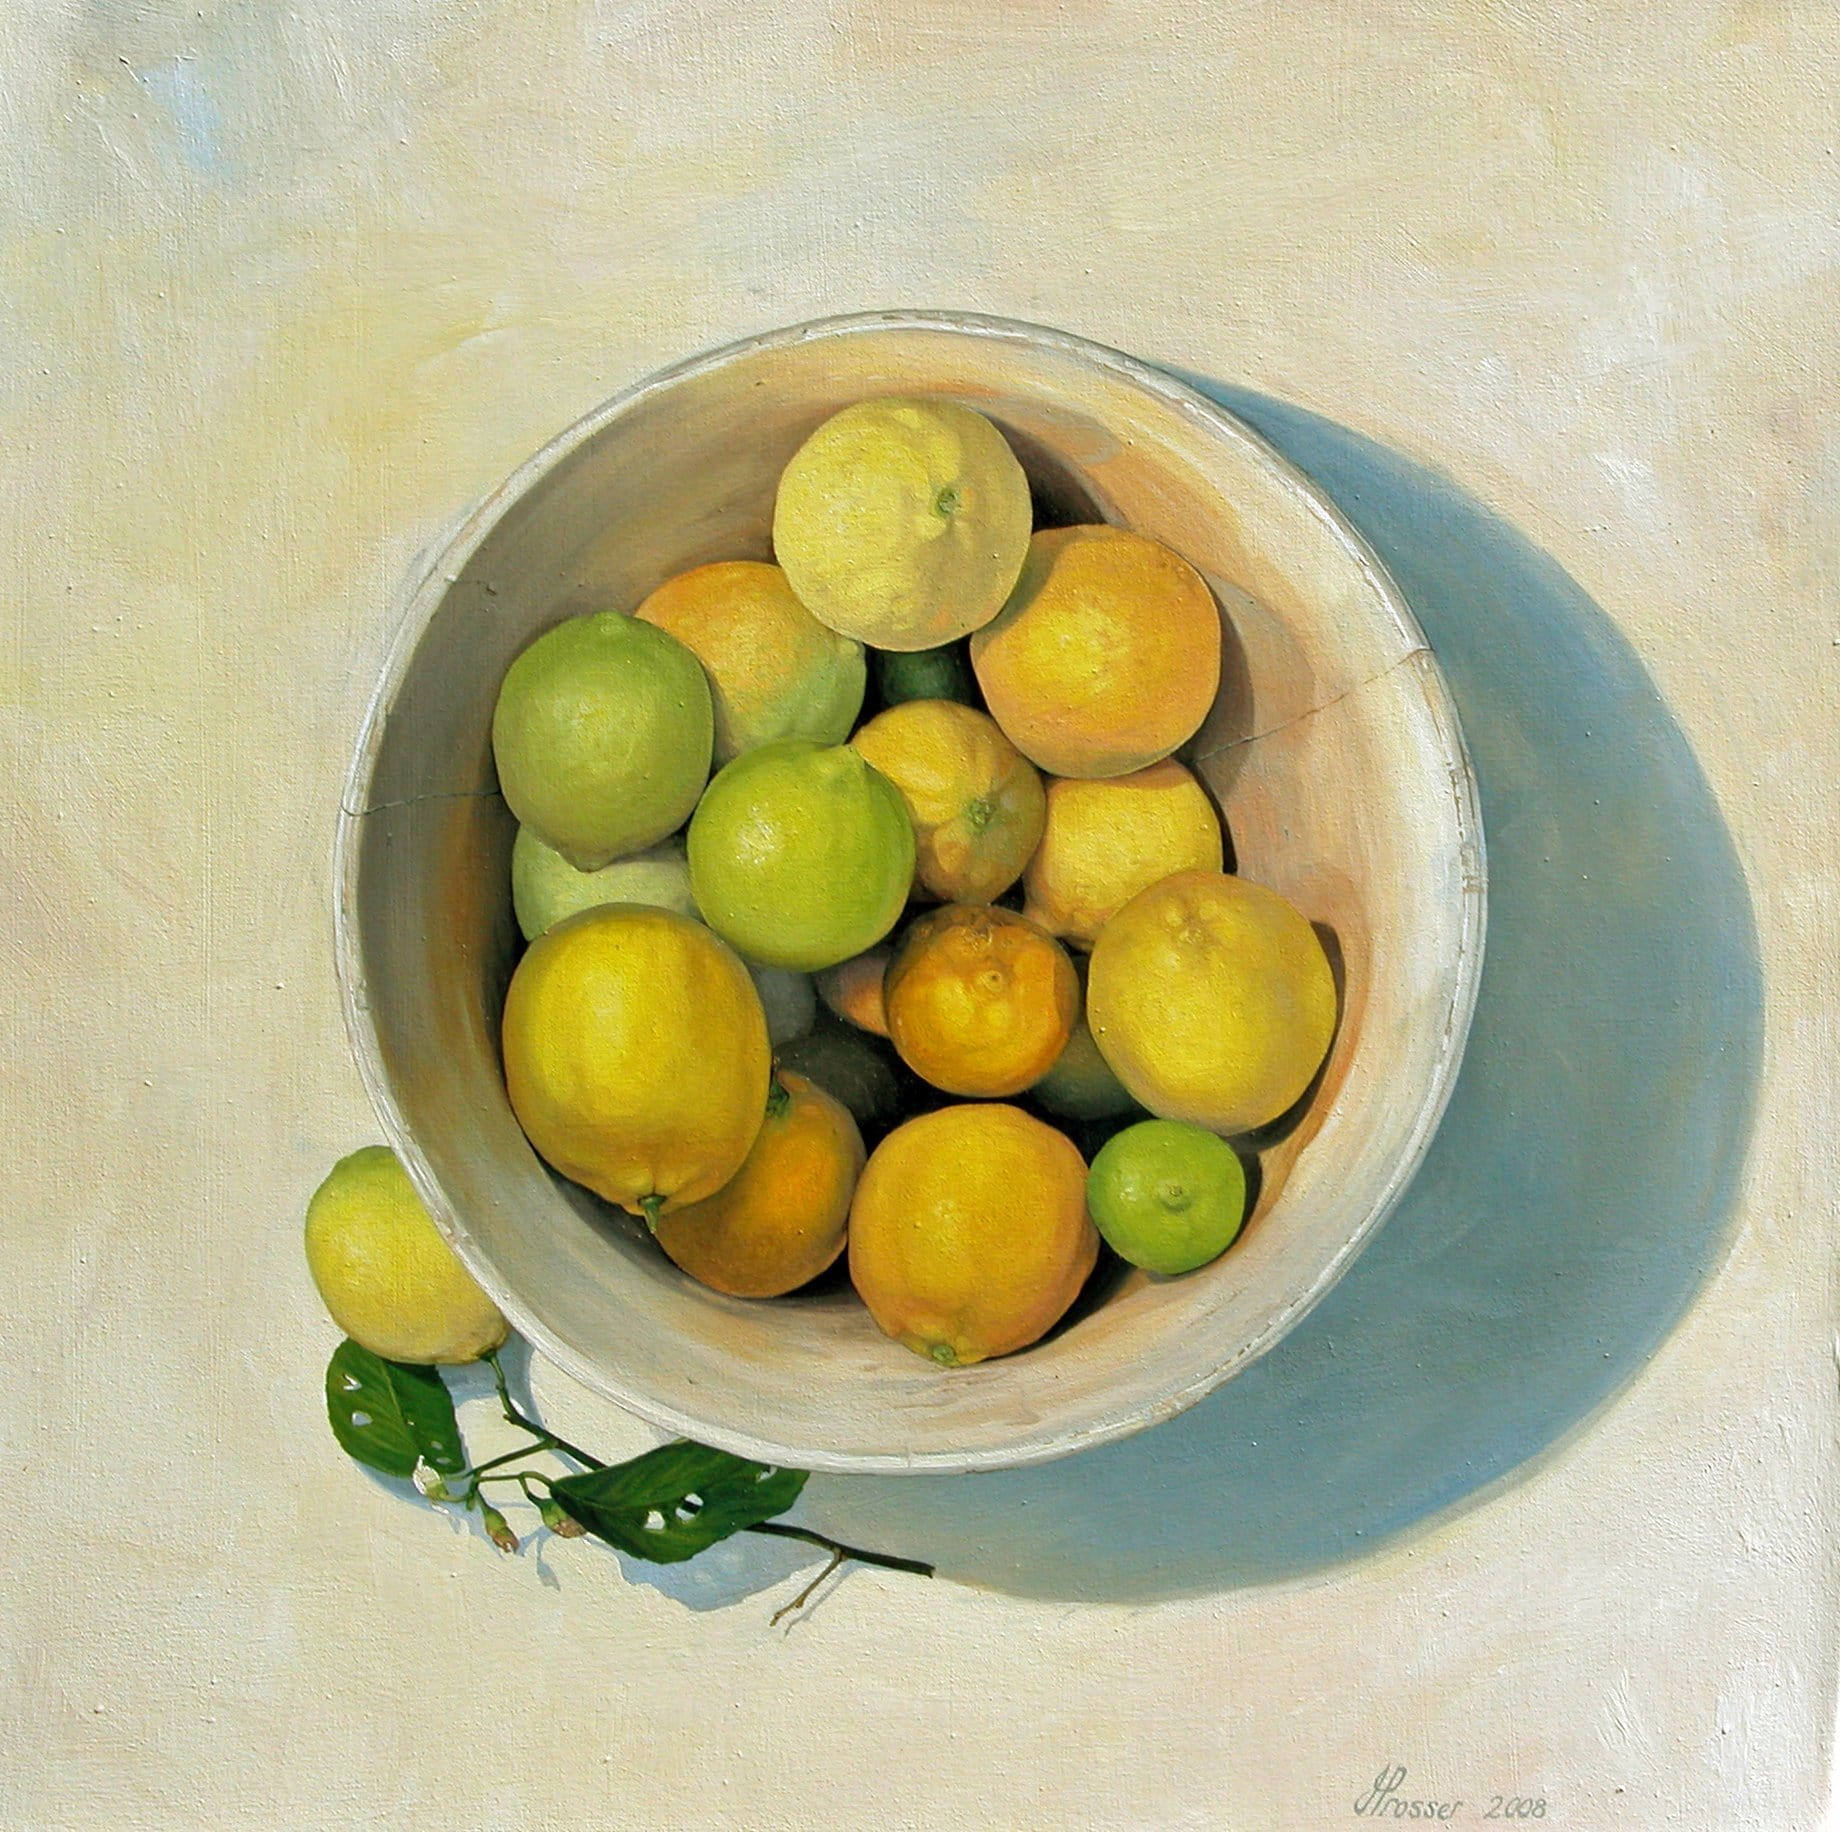 AUSTRALIAN ART FOR SALE - Bowl Of Lemons & Limes - JAIME PROSSER ART - JAIME PROSSER ART